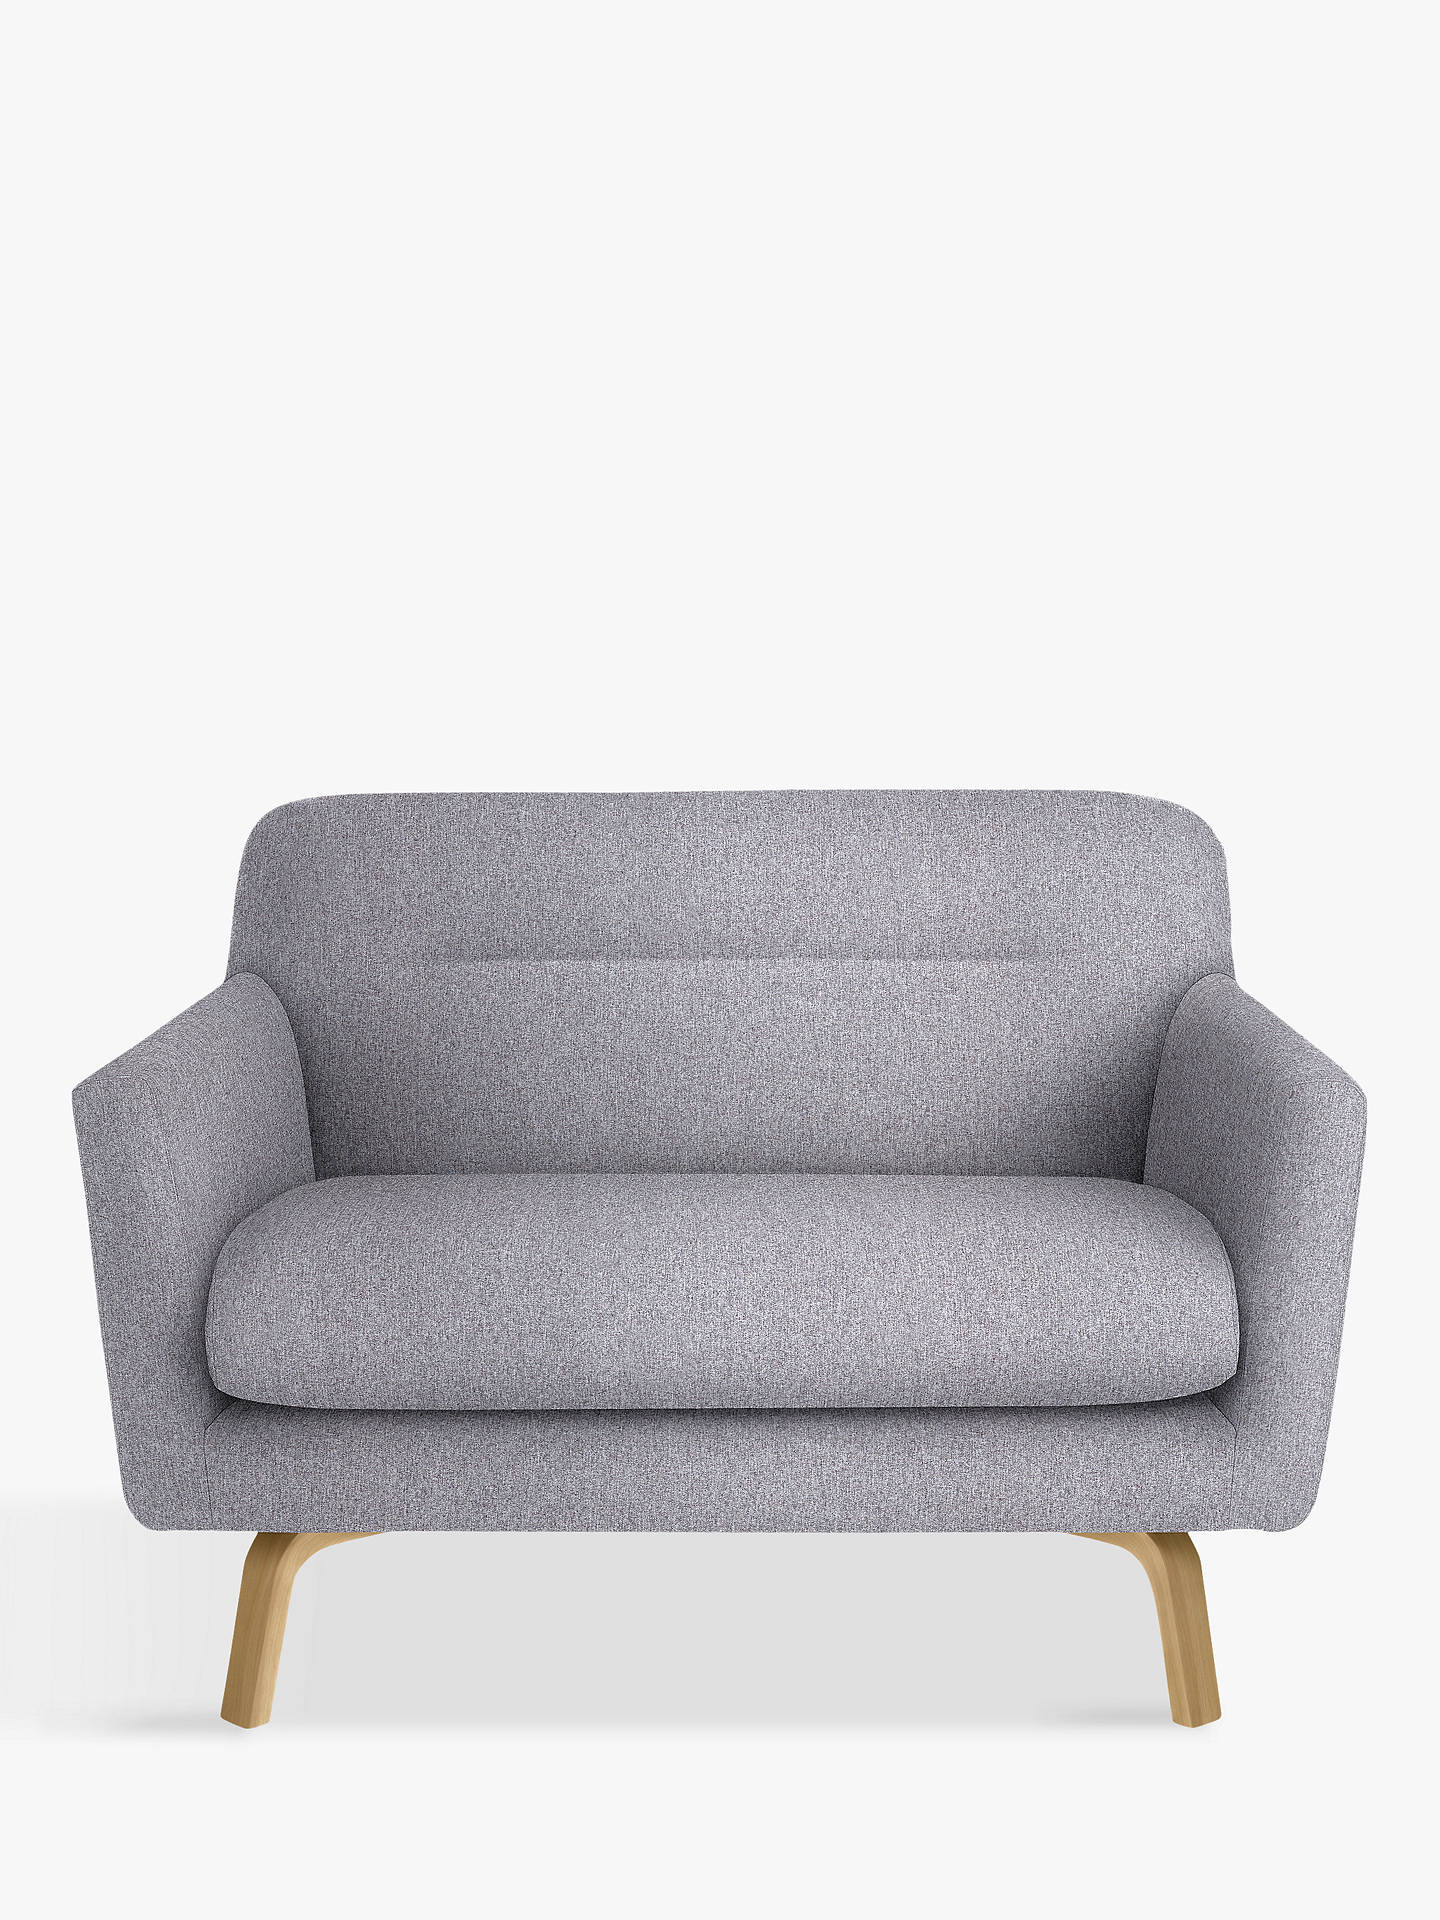 House By John Lewis Archie Small 2 Seater Sofa Light Leg Saga Grey Online